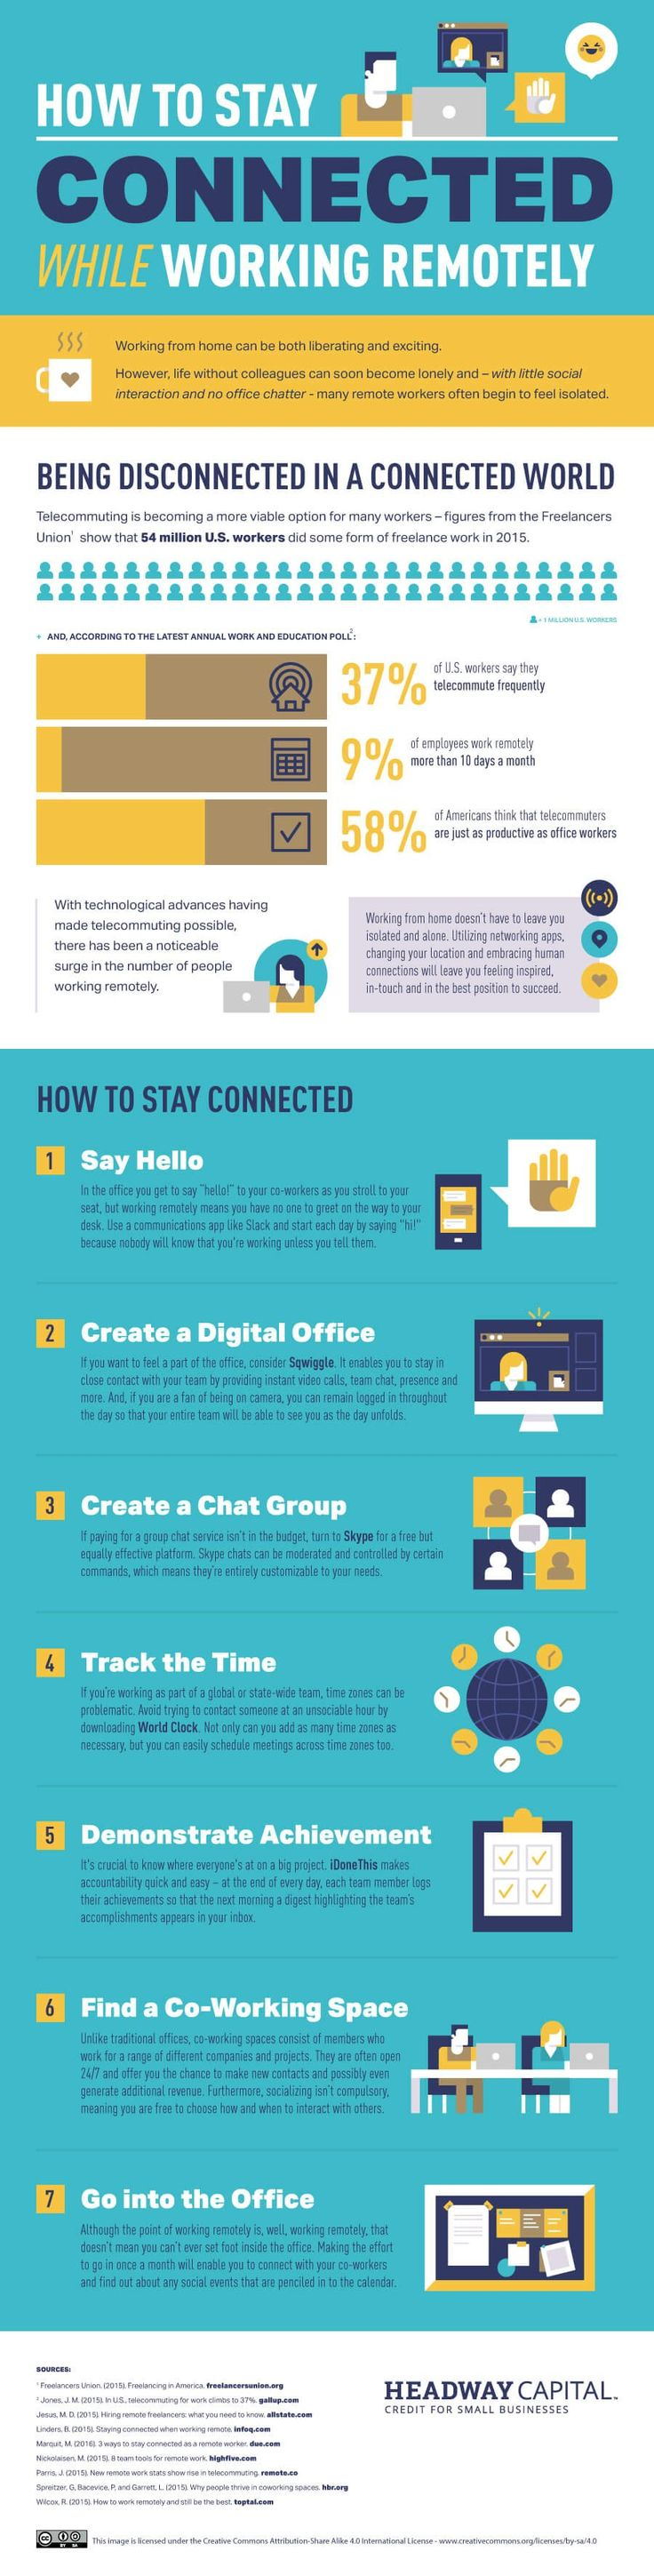 How to Stay Connected While Working Remotely - #infographic